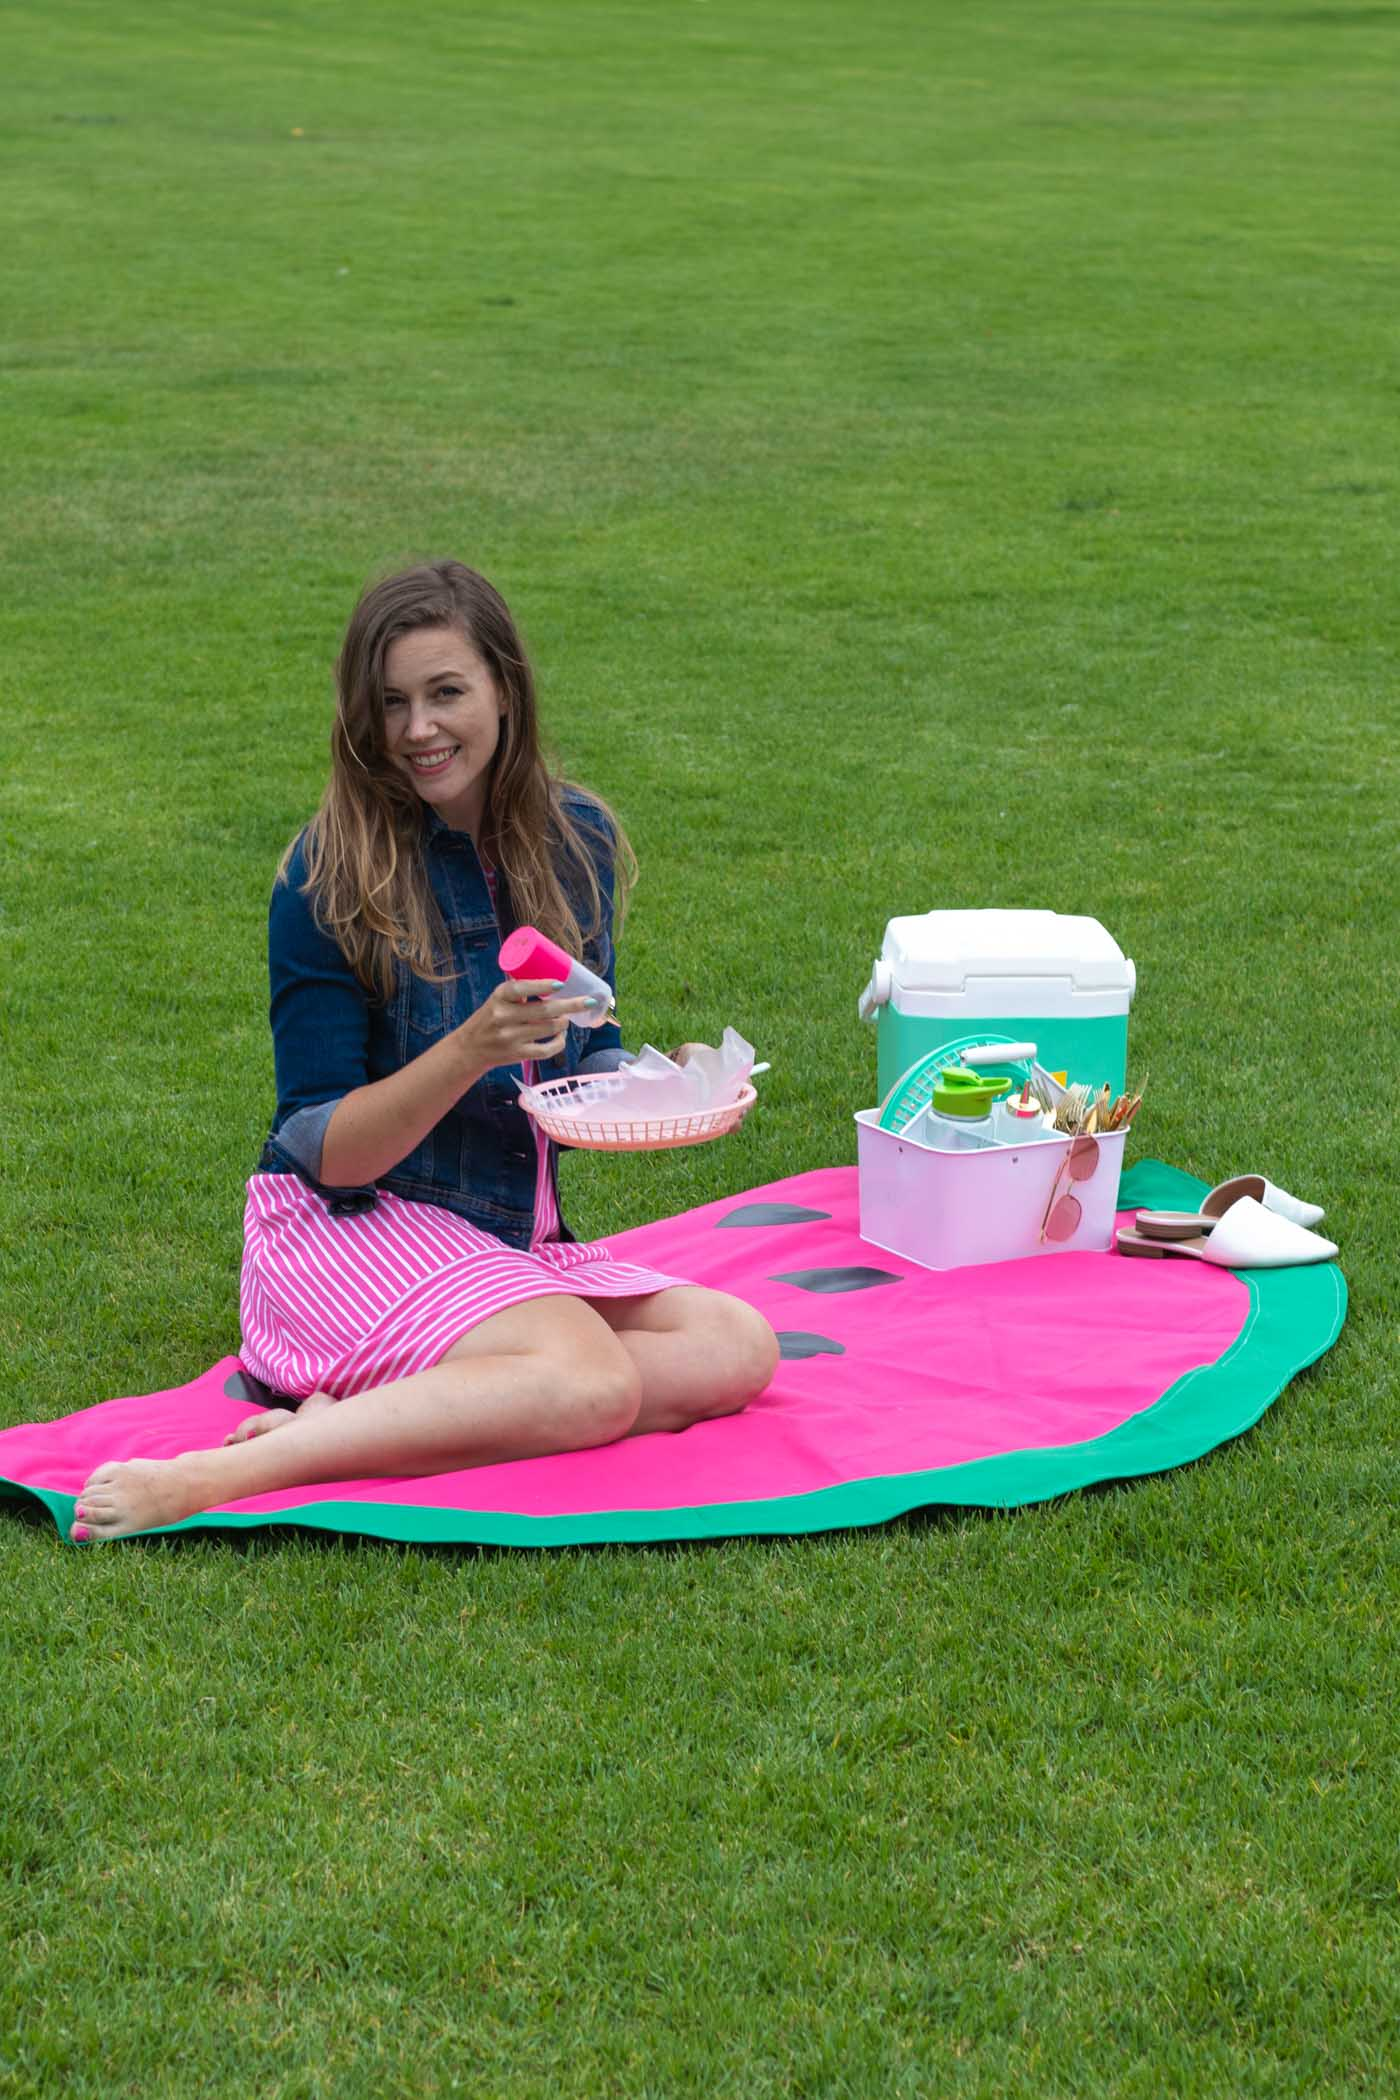 DIY Watermelon Picnic Blanket Sewing Tutorial | Club Crafted